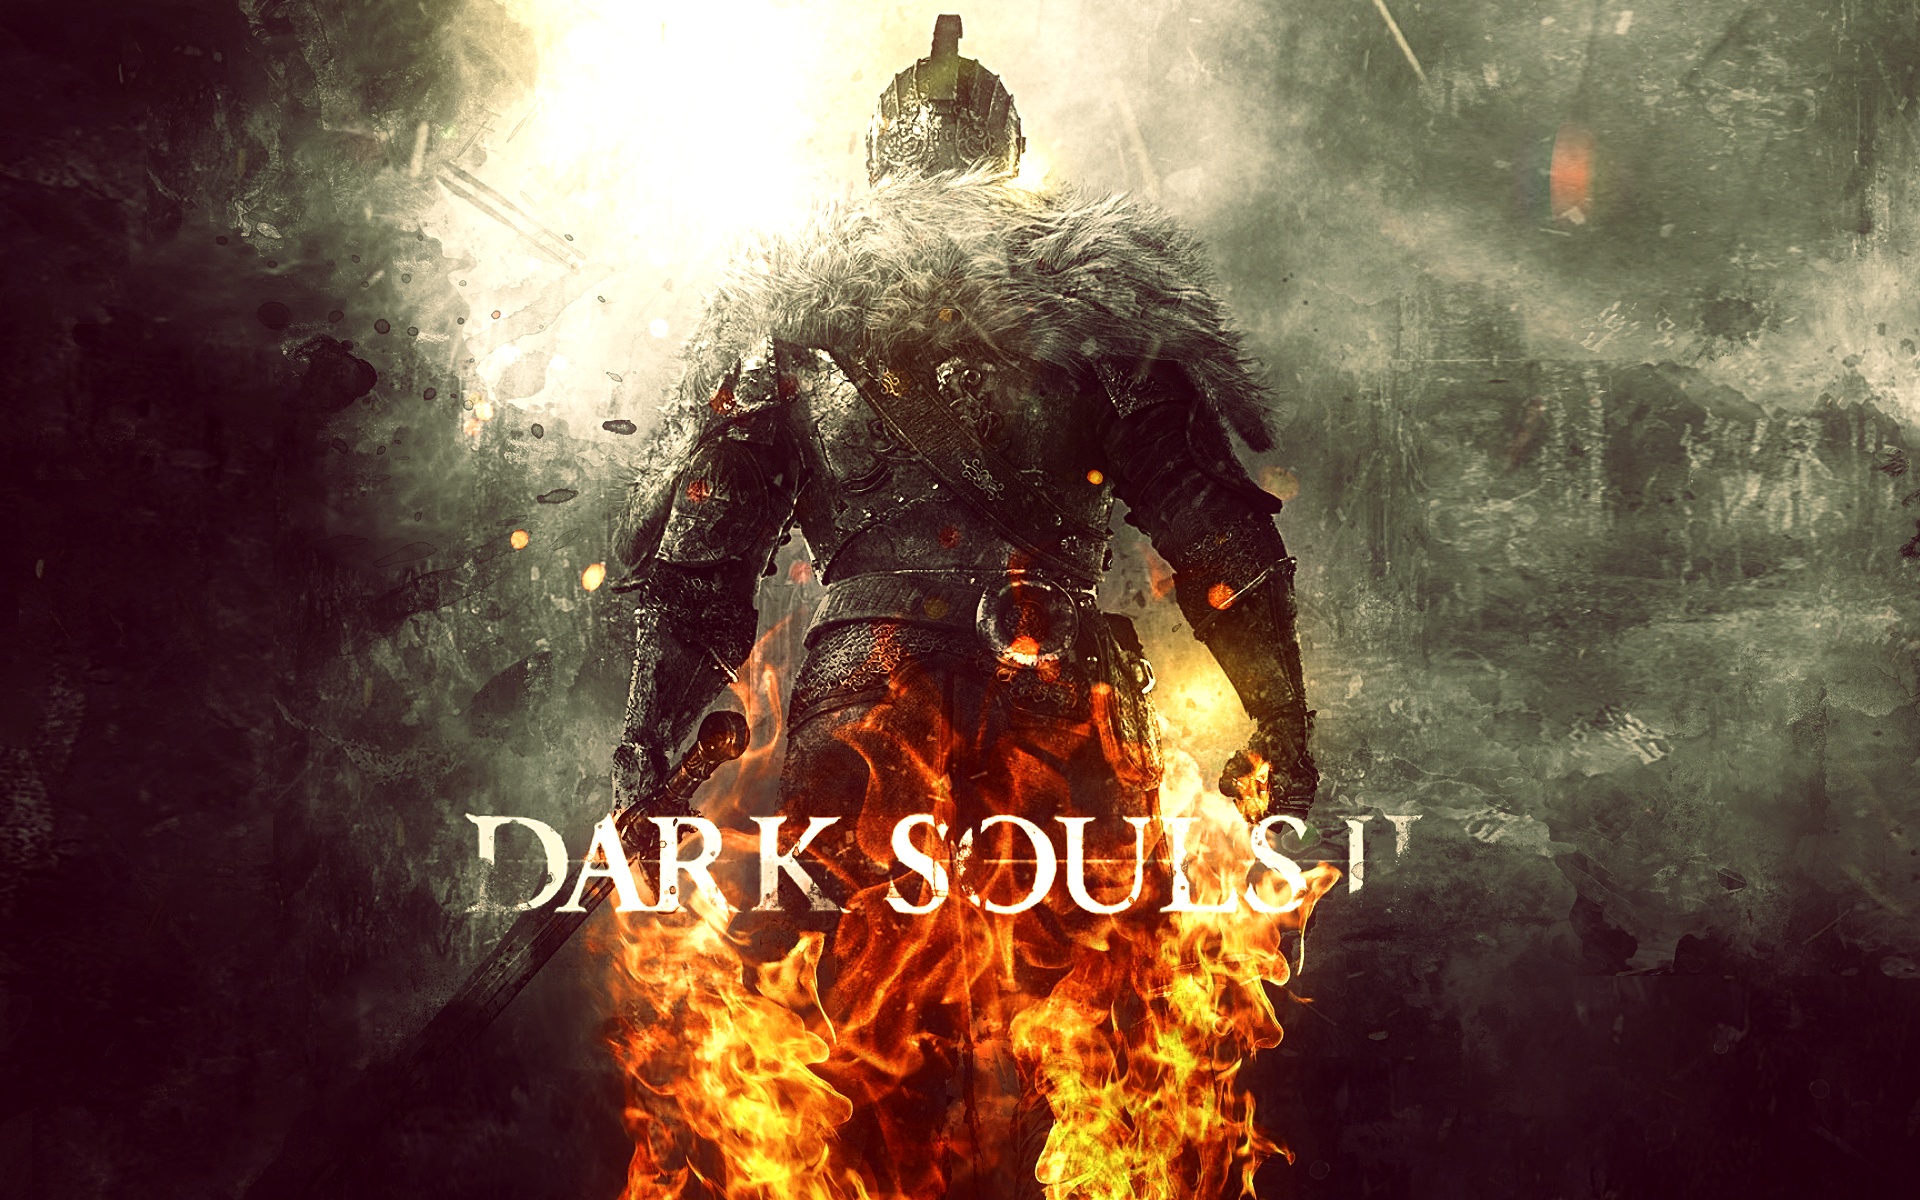 Free Download Thread Dark Souls 2 Wallpaper 1080p 1920x1200 For